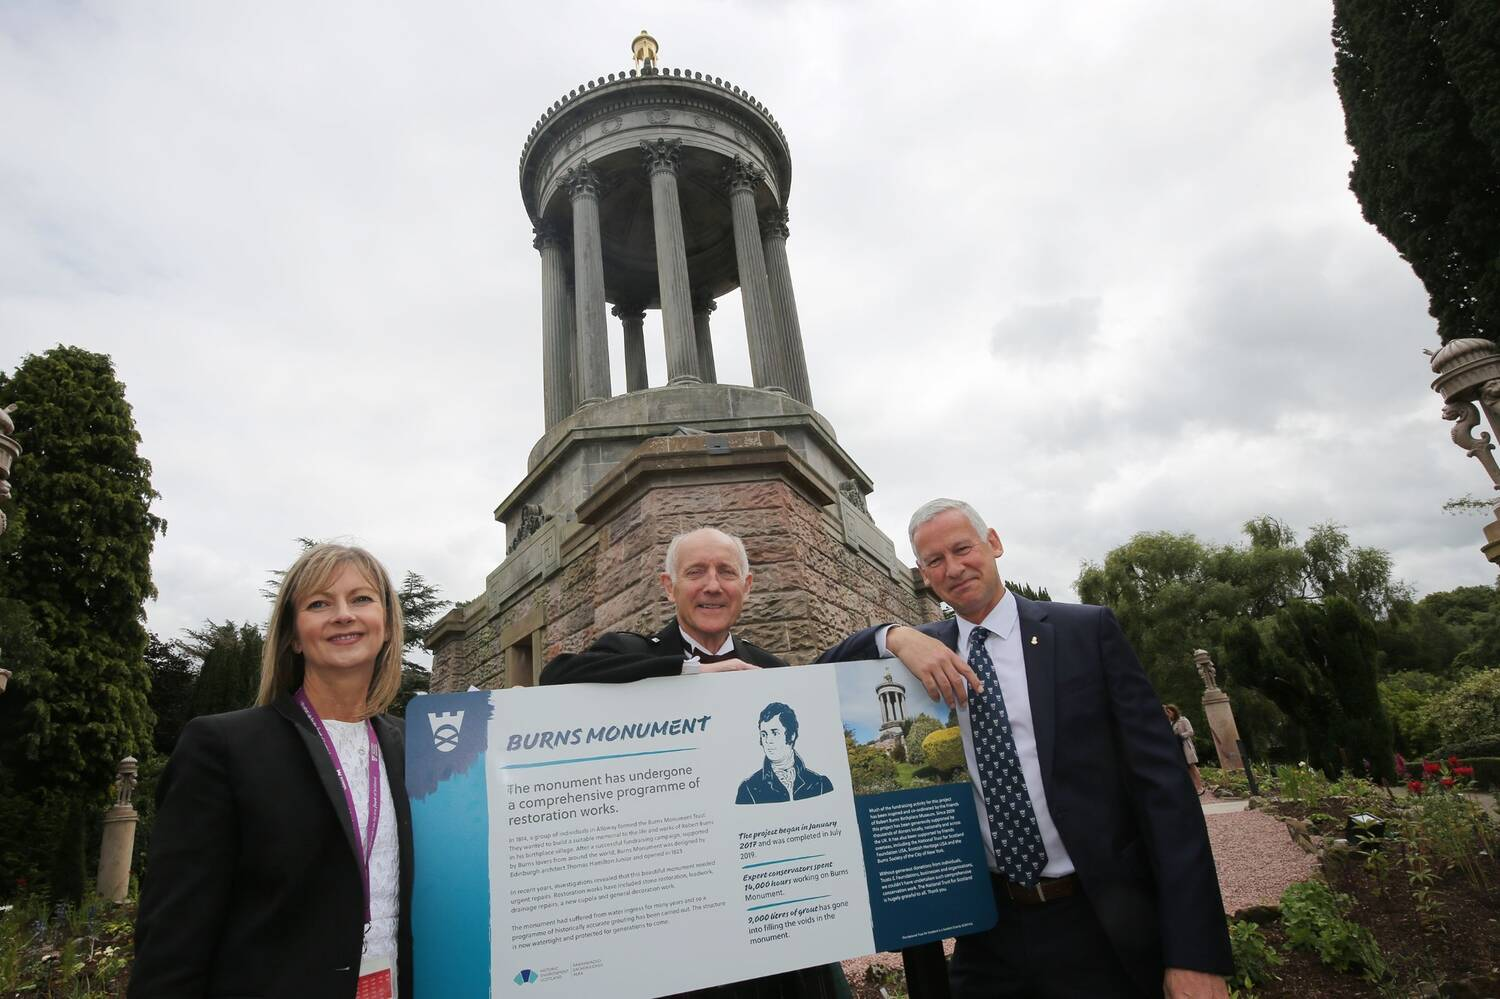 Three people stand beside an interpretation board in front of Burns Monument.